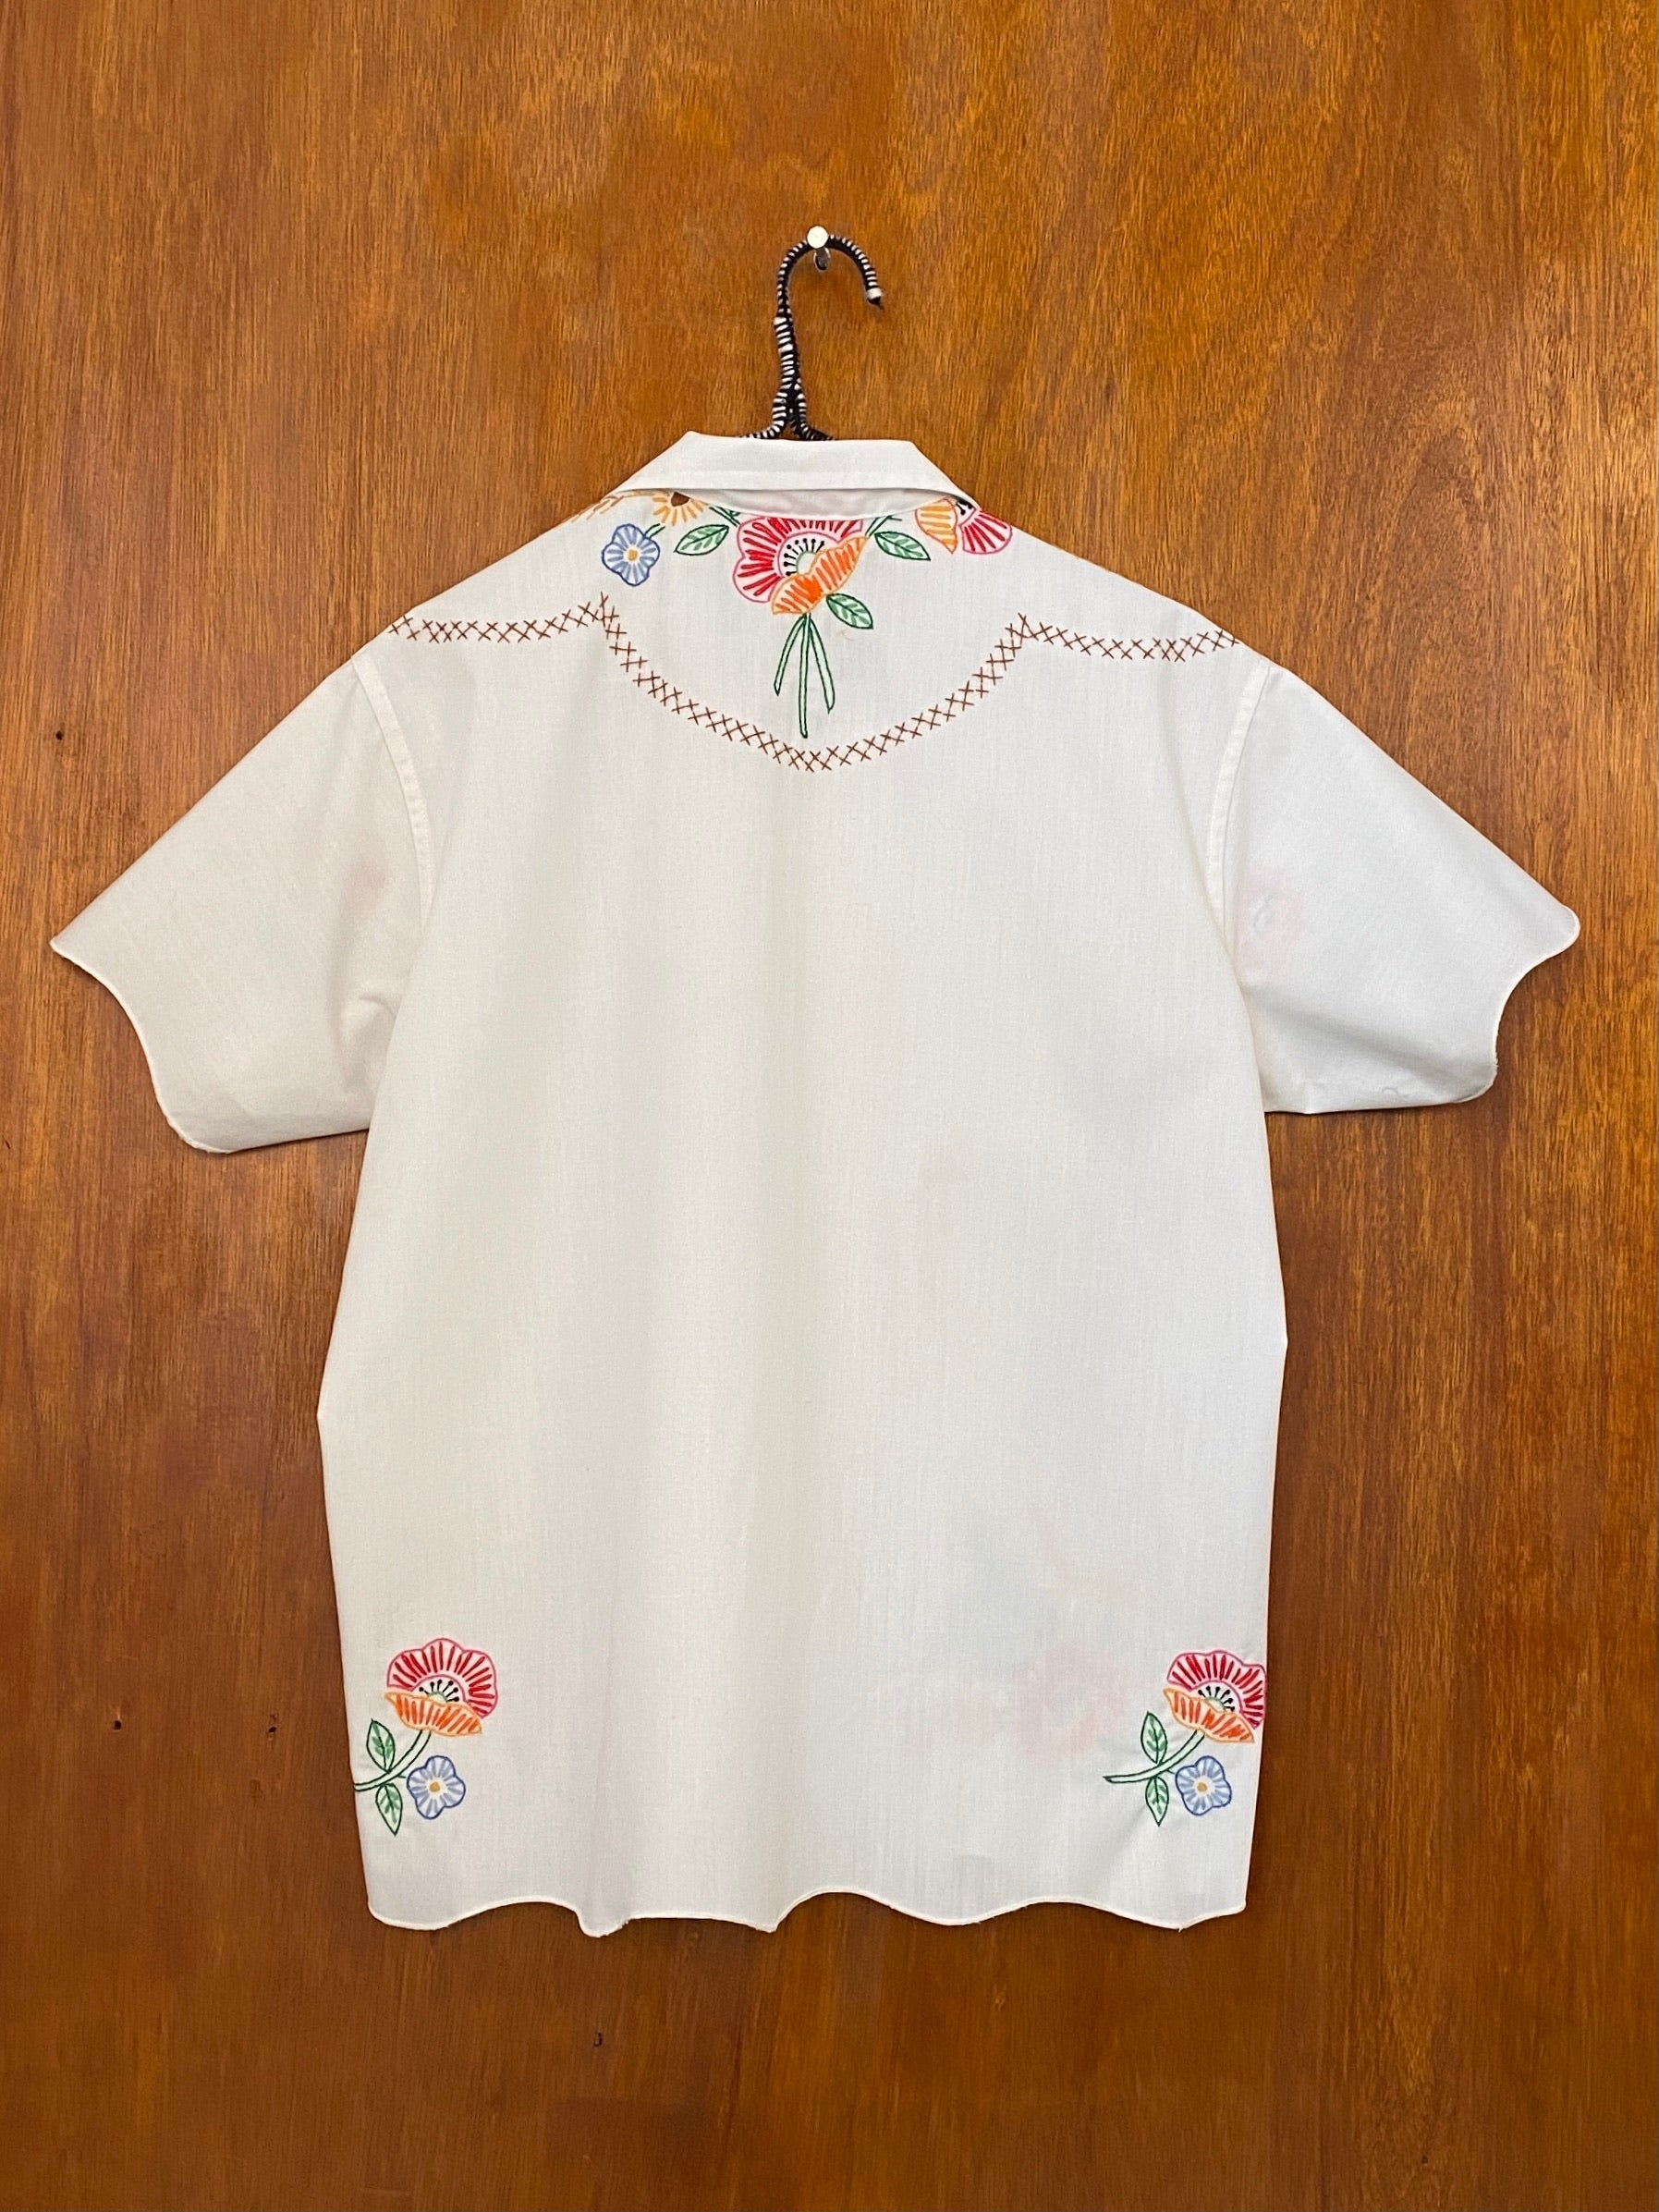 Wheat Bouquet Embroidery Shirt - S/M